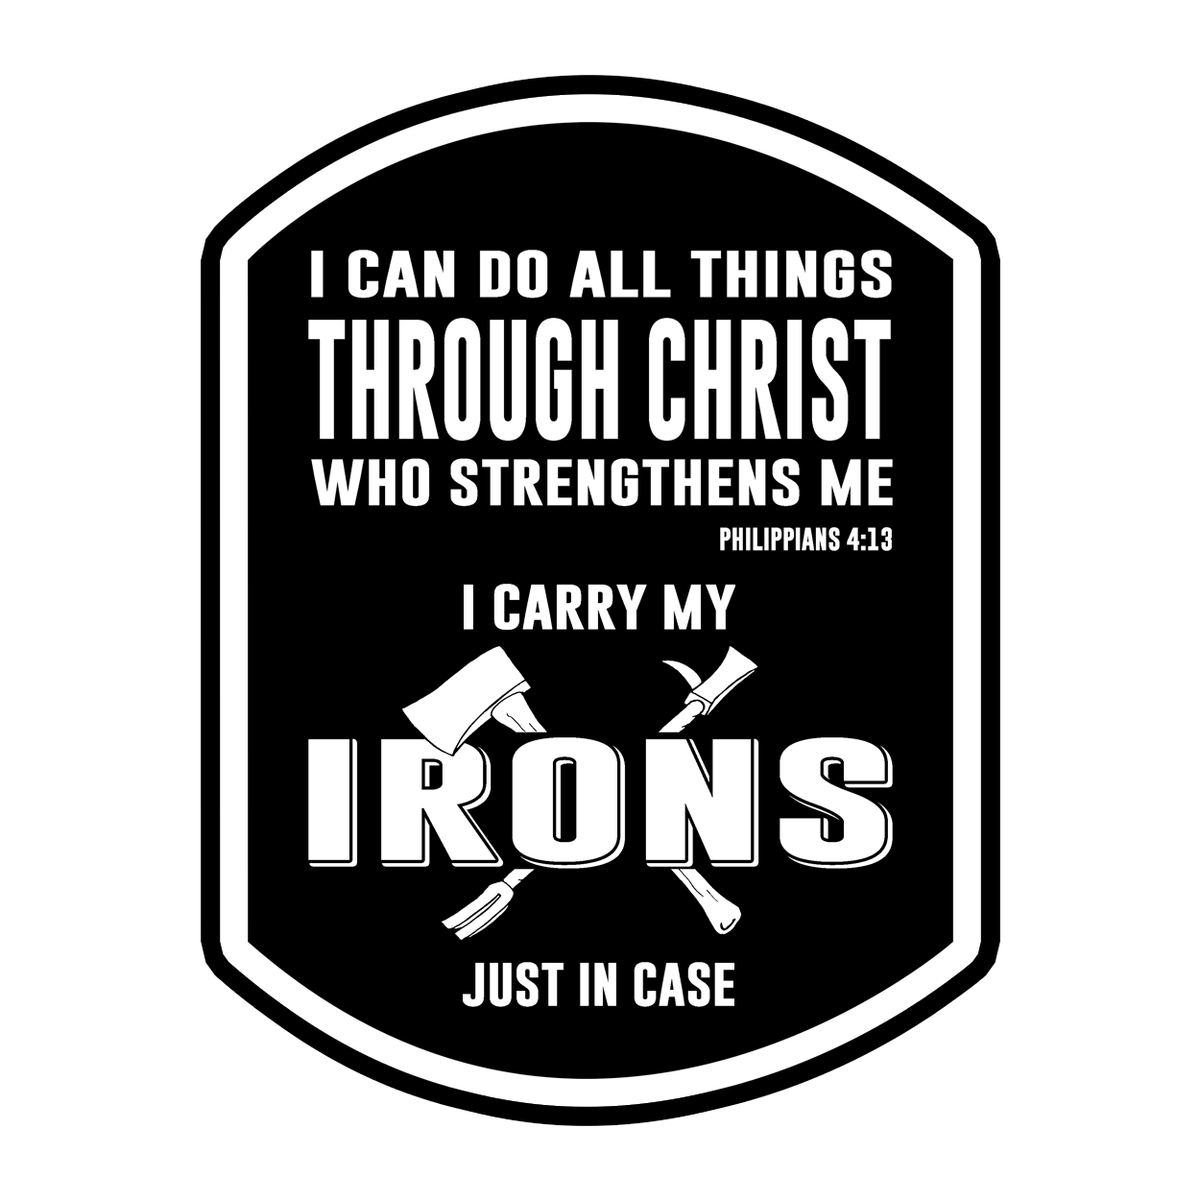 I can do all things through christ 4 sticker fireman up